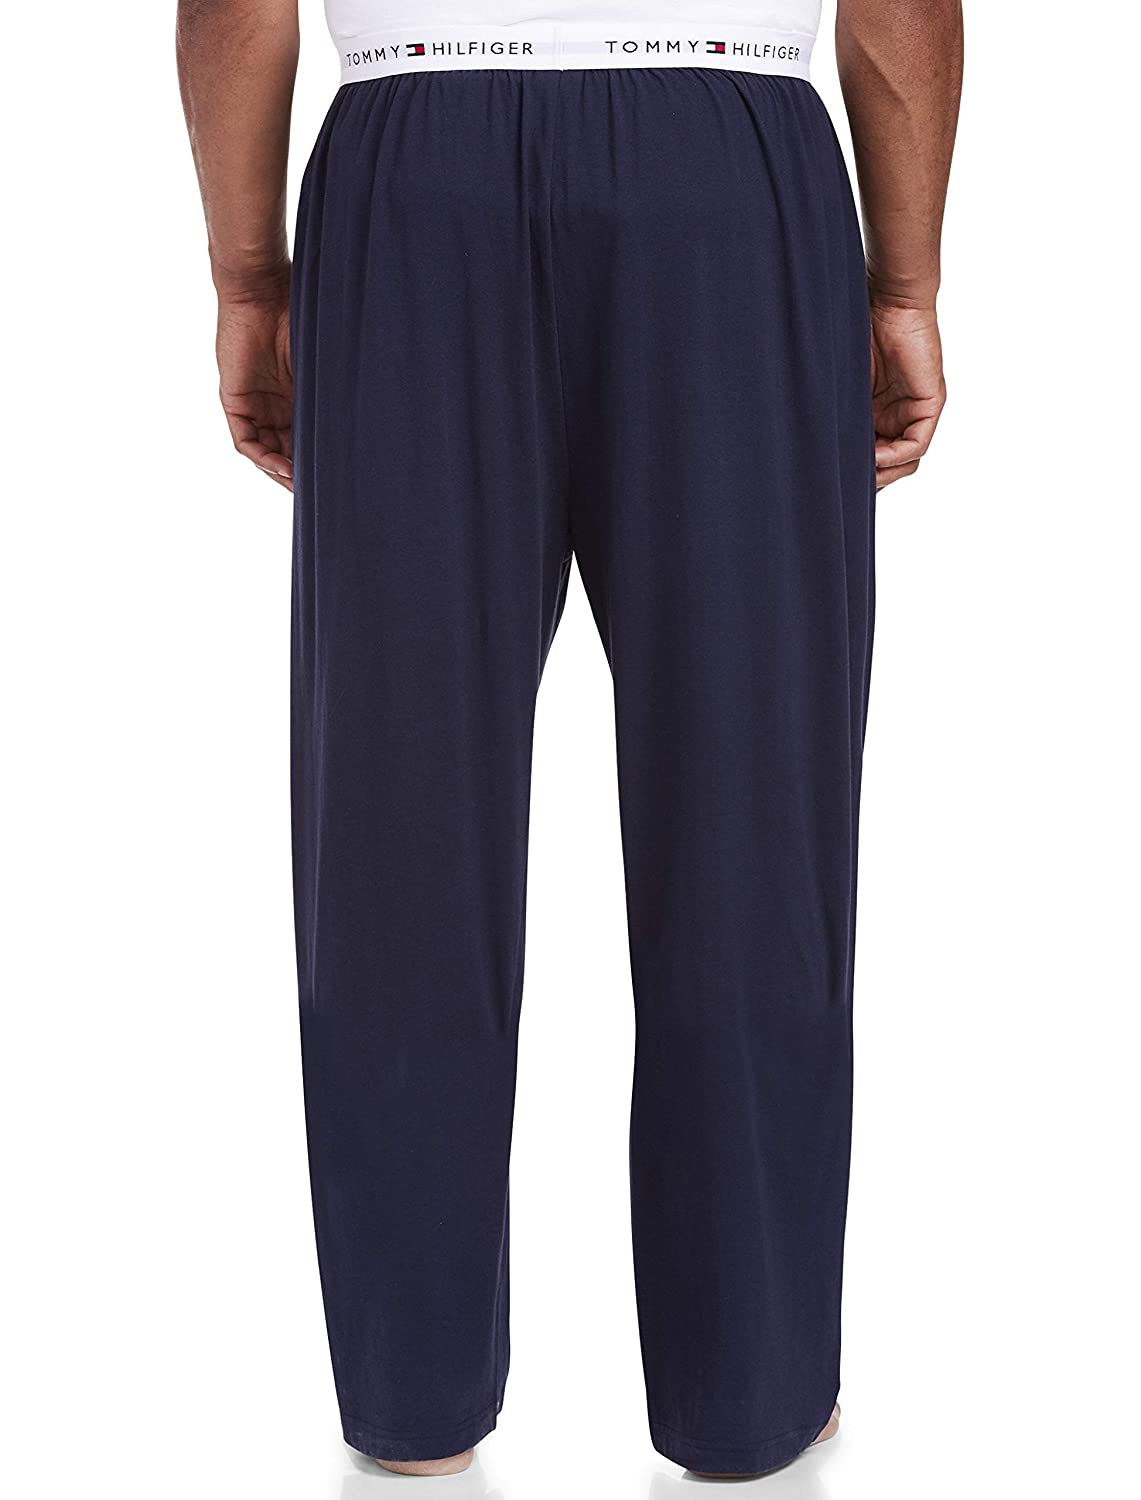 Tommy Hilfiger Mens Cotton Classics Lounge Pant